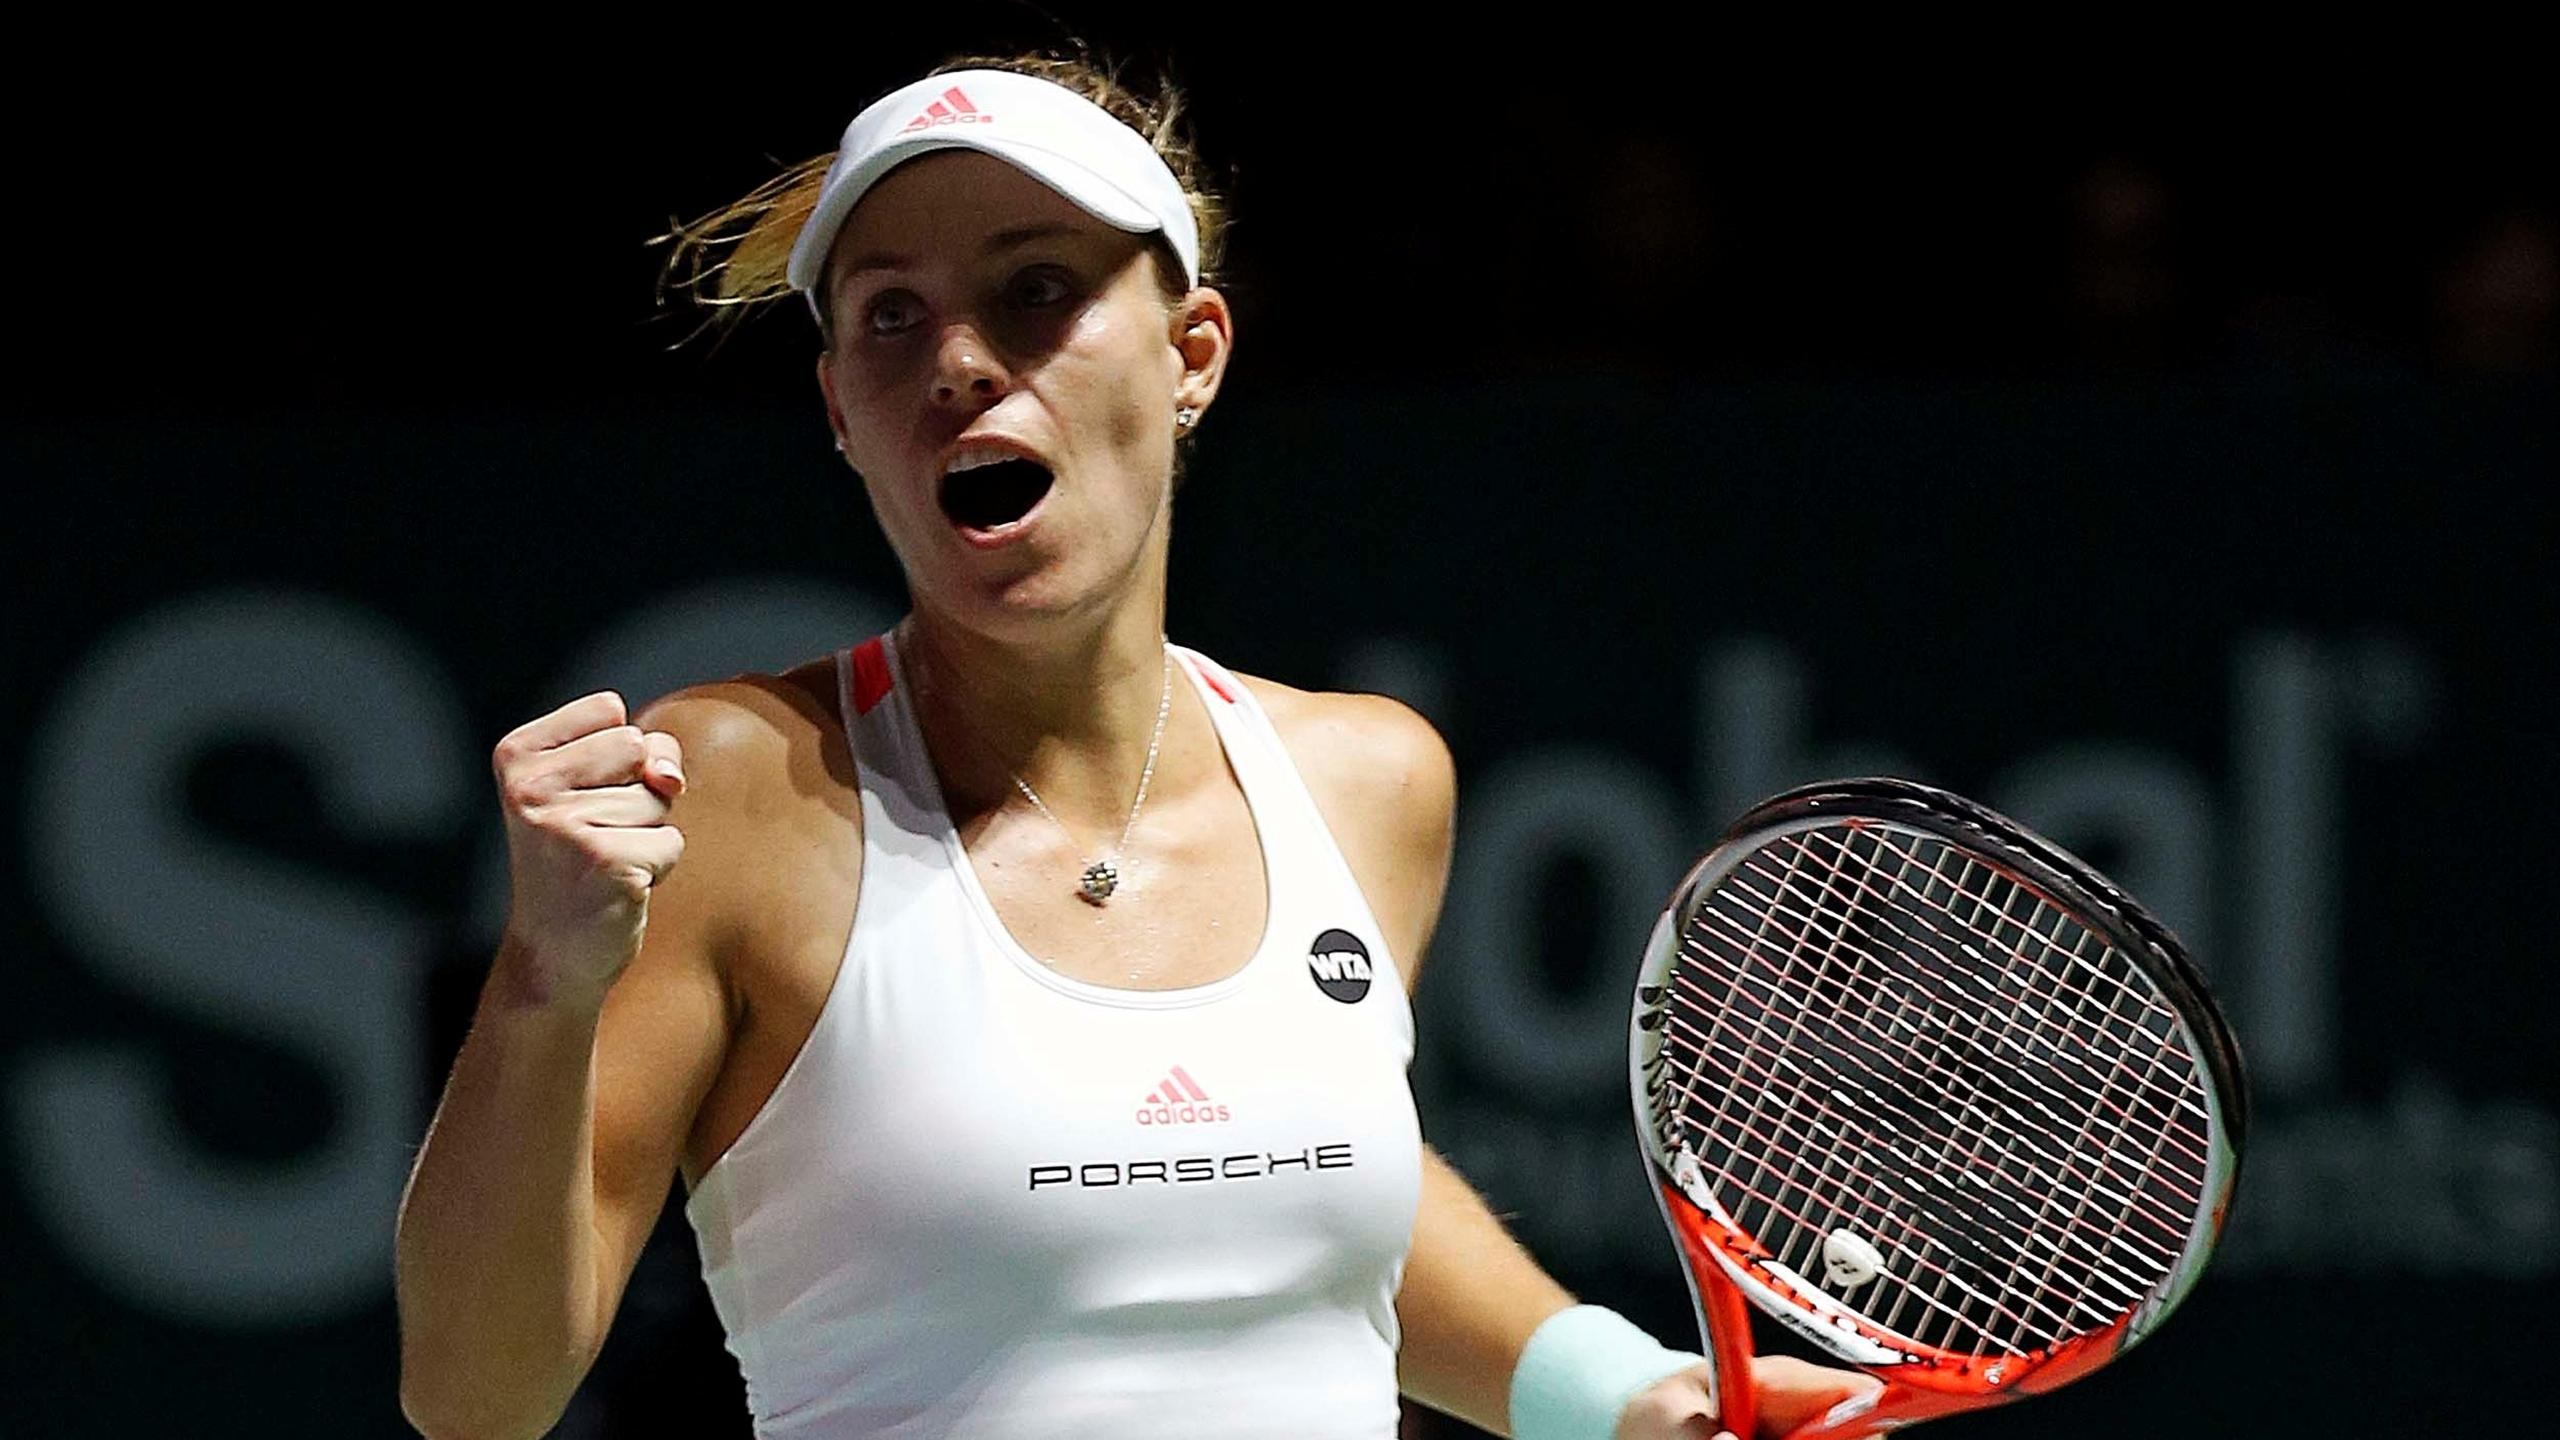 Angelique Kerber of Germany celebrates after defeating Agnieszka Radwanska of Poland